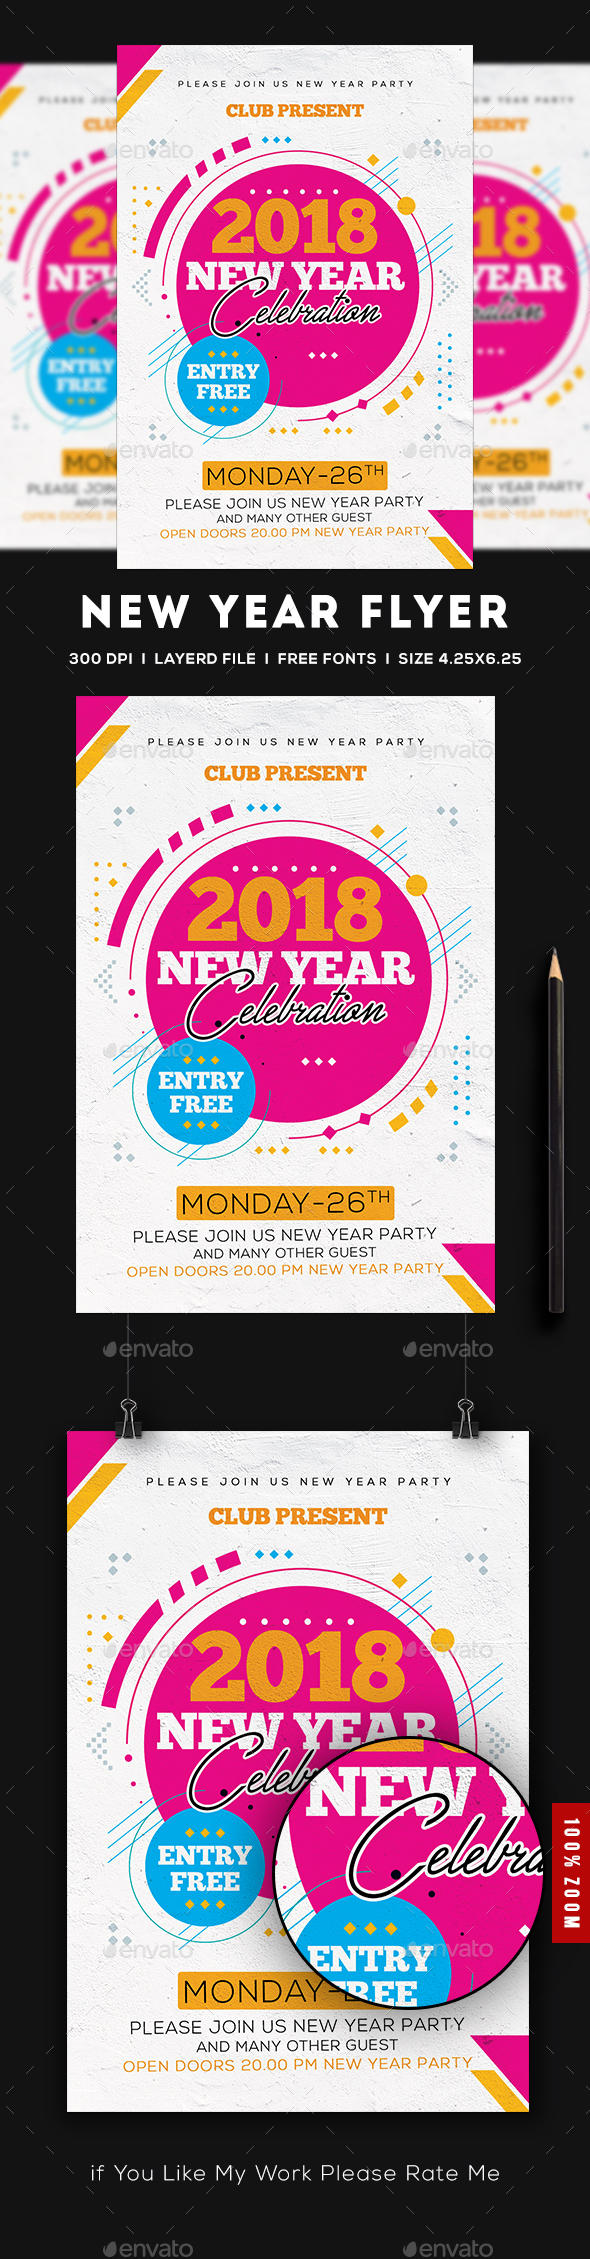 2018 New Year Flyer - Clubs & Parties Events